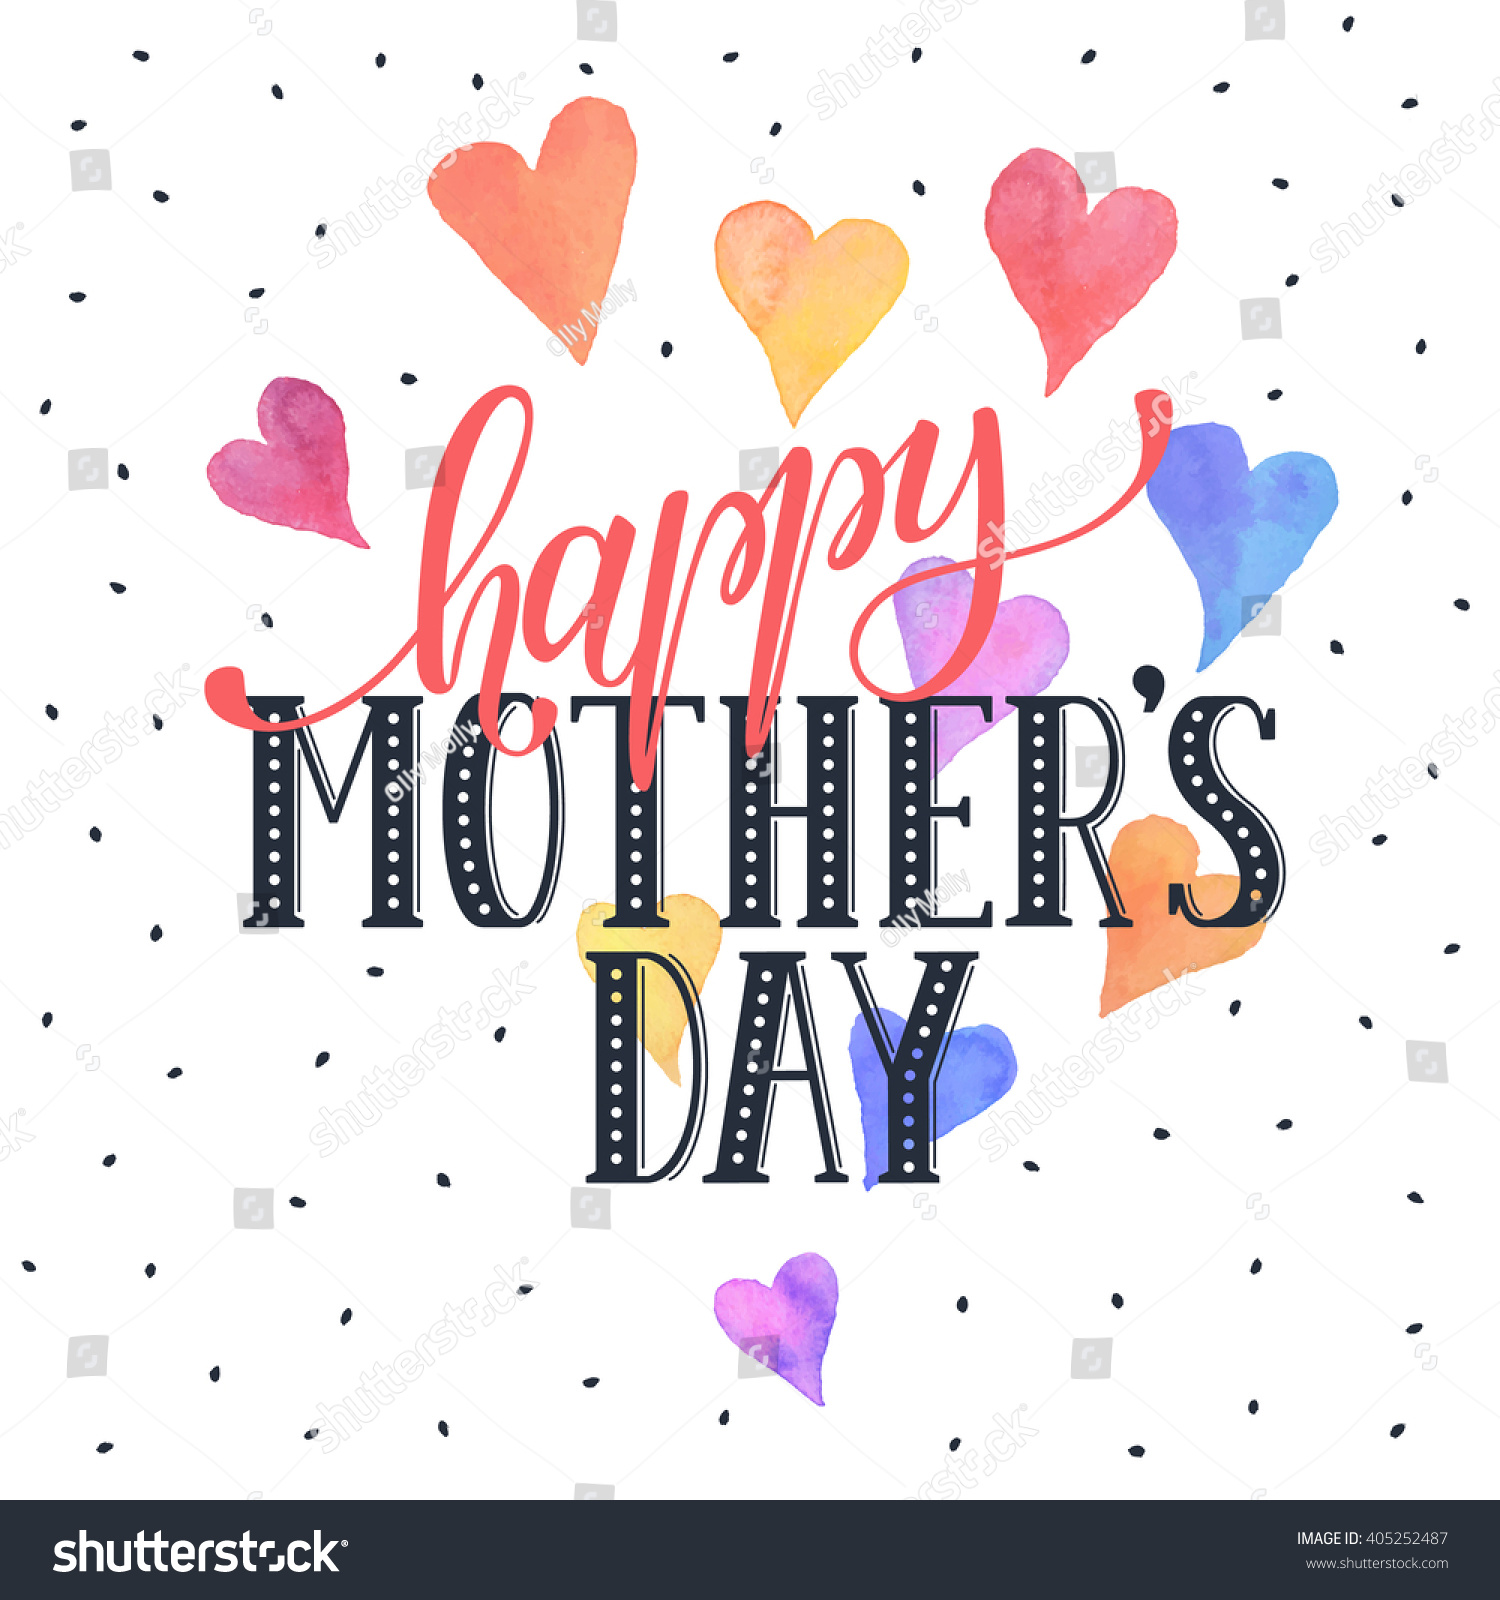 Mothers day greeting card template happy stock vector 405252487 mothers day greeting card template happy mothers day wording with watercolor hearts on background kristyandbryce Choice Image